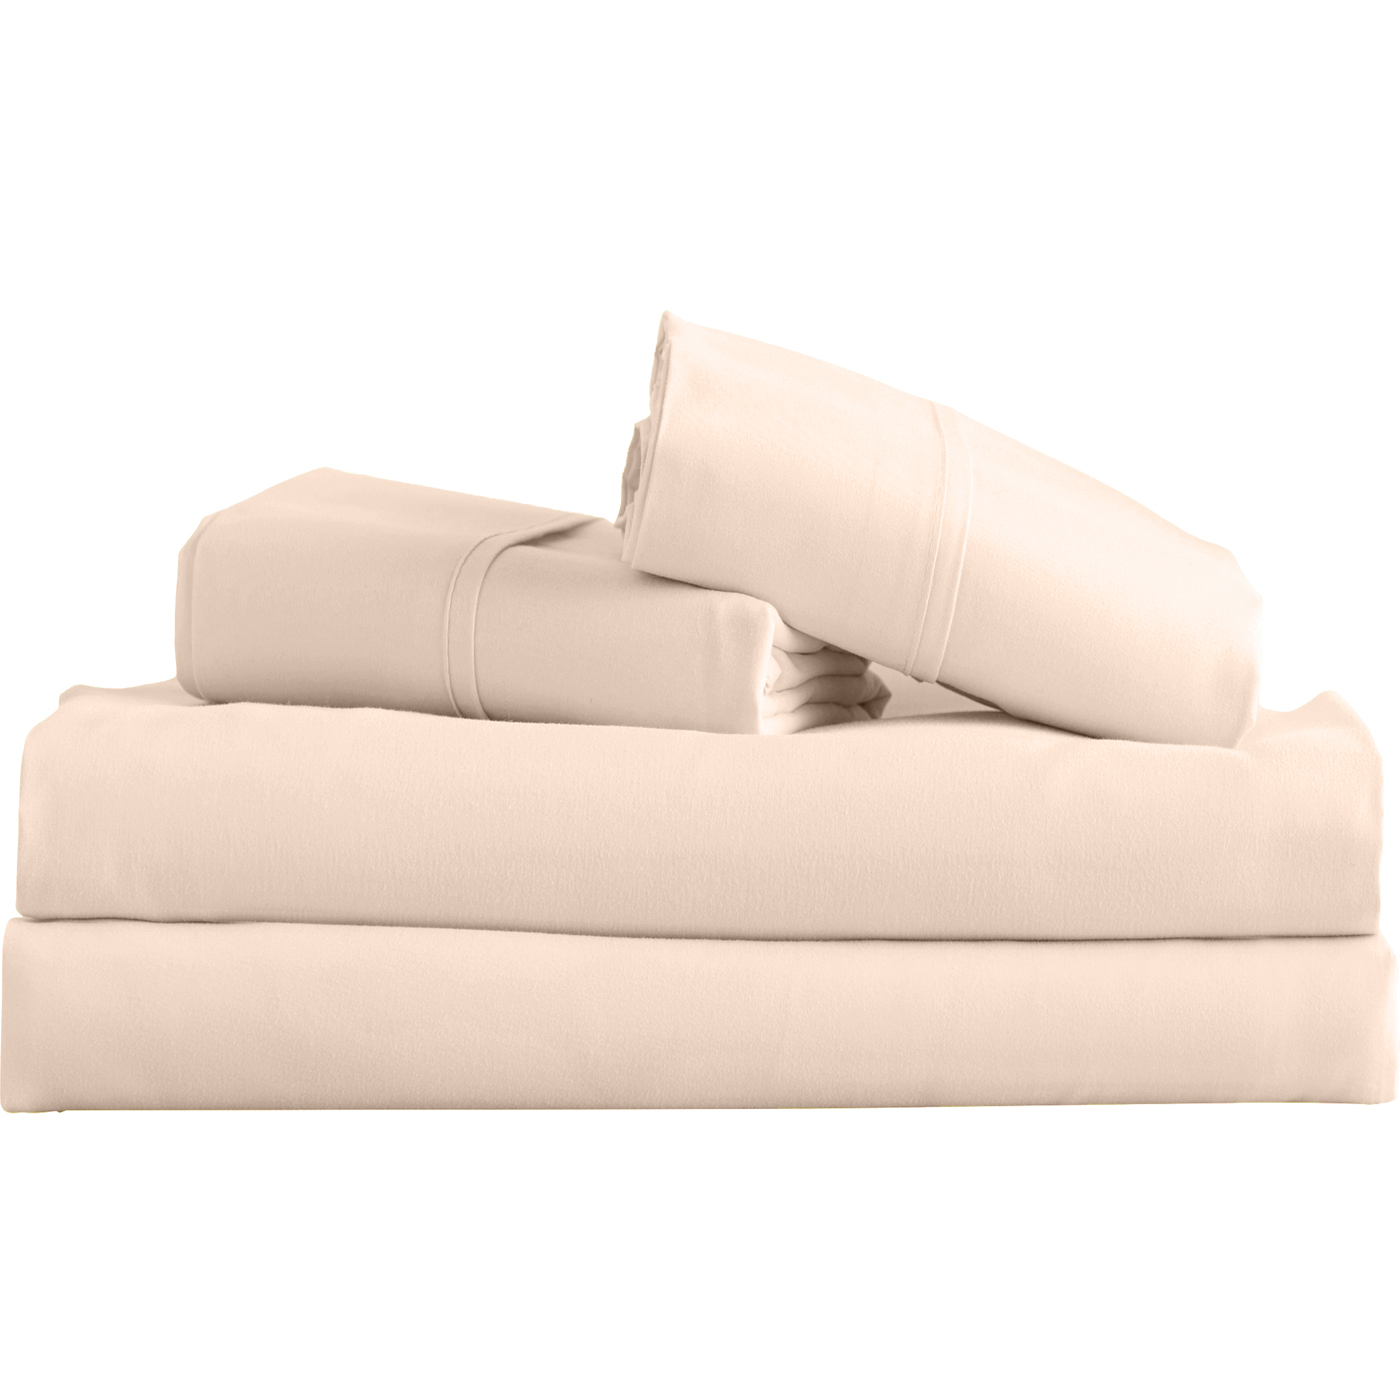 Supreme-Super-Soft-4-Piece-Bed-Sheet-Set-Deep-Pocket-Bedding-All-Colors-Sizes thumbnail 22